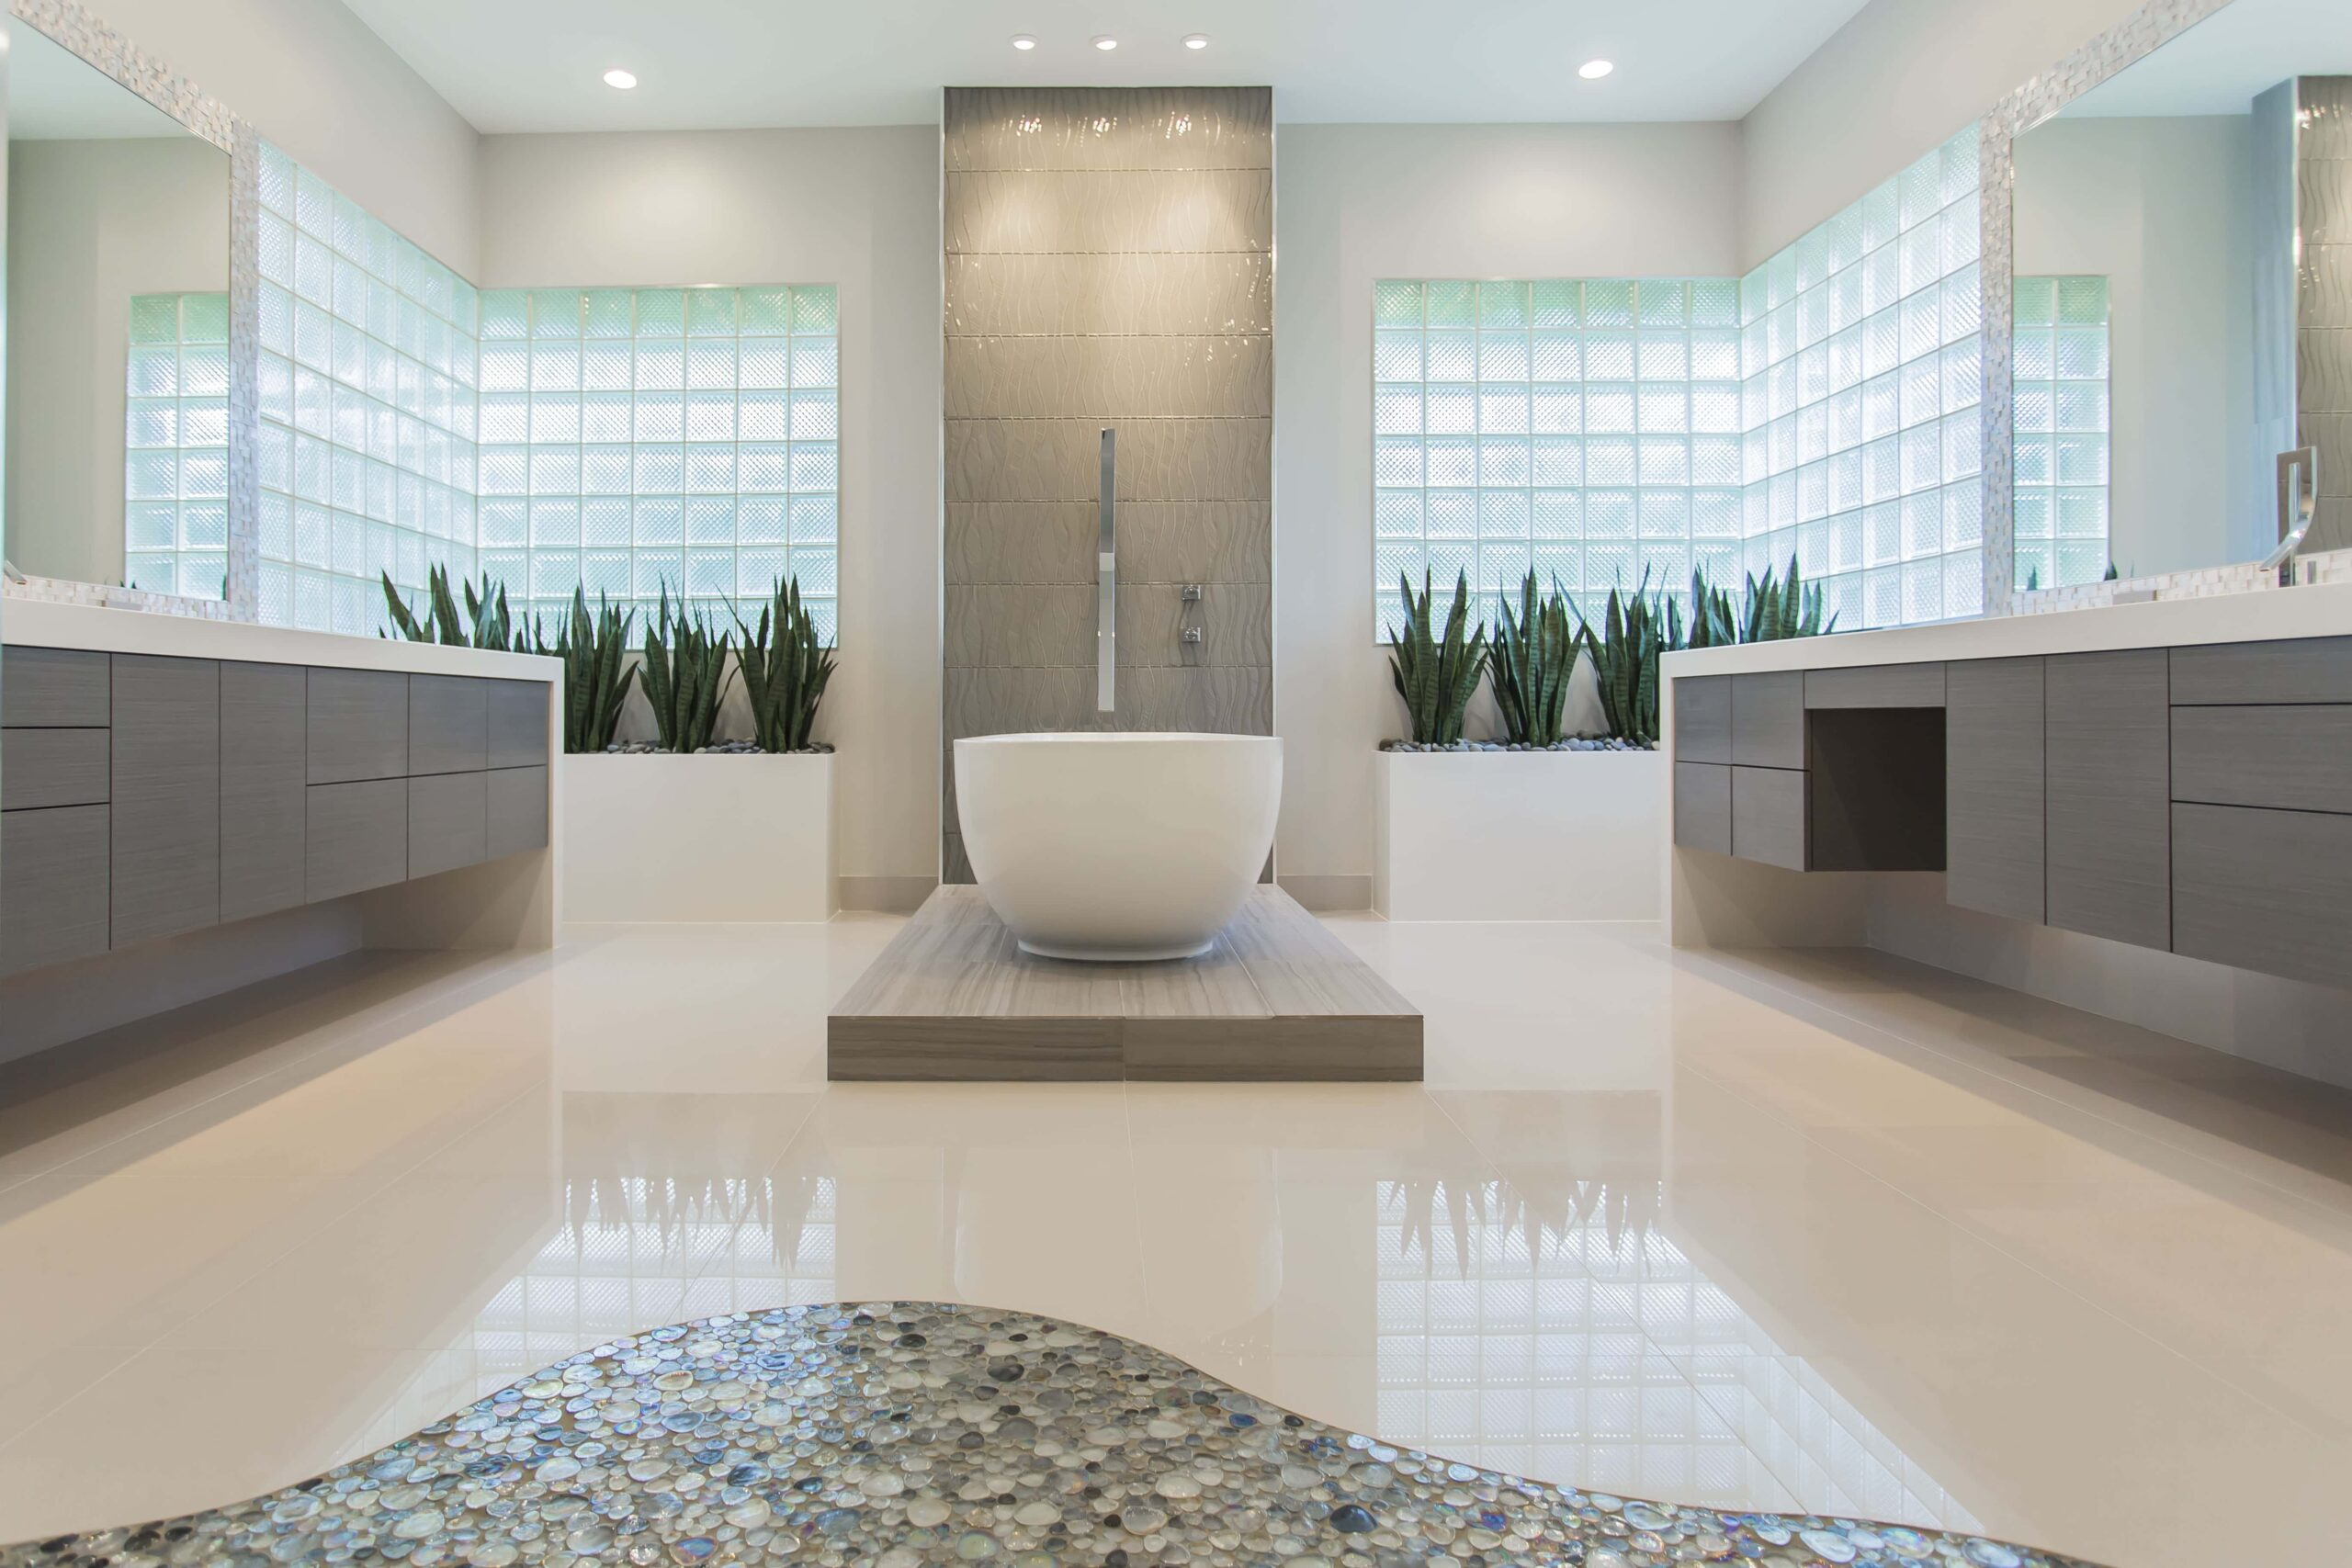 memorial modern master bath remodel houston tx 2015 - Bathroom Design Houston